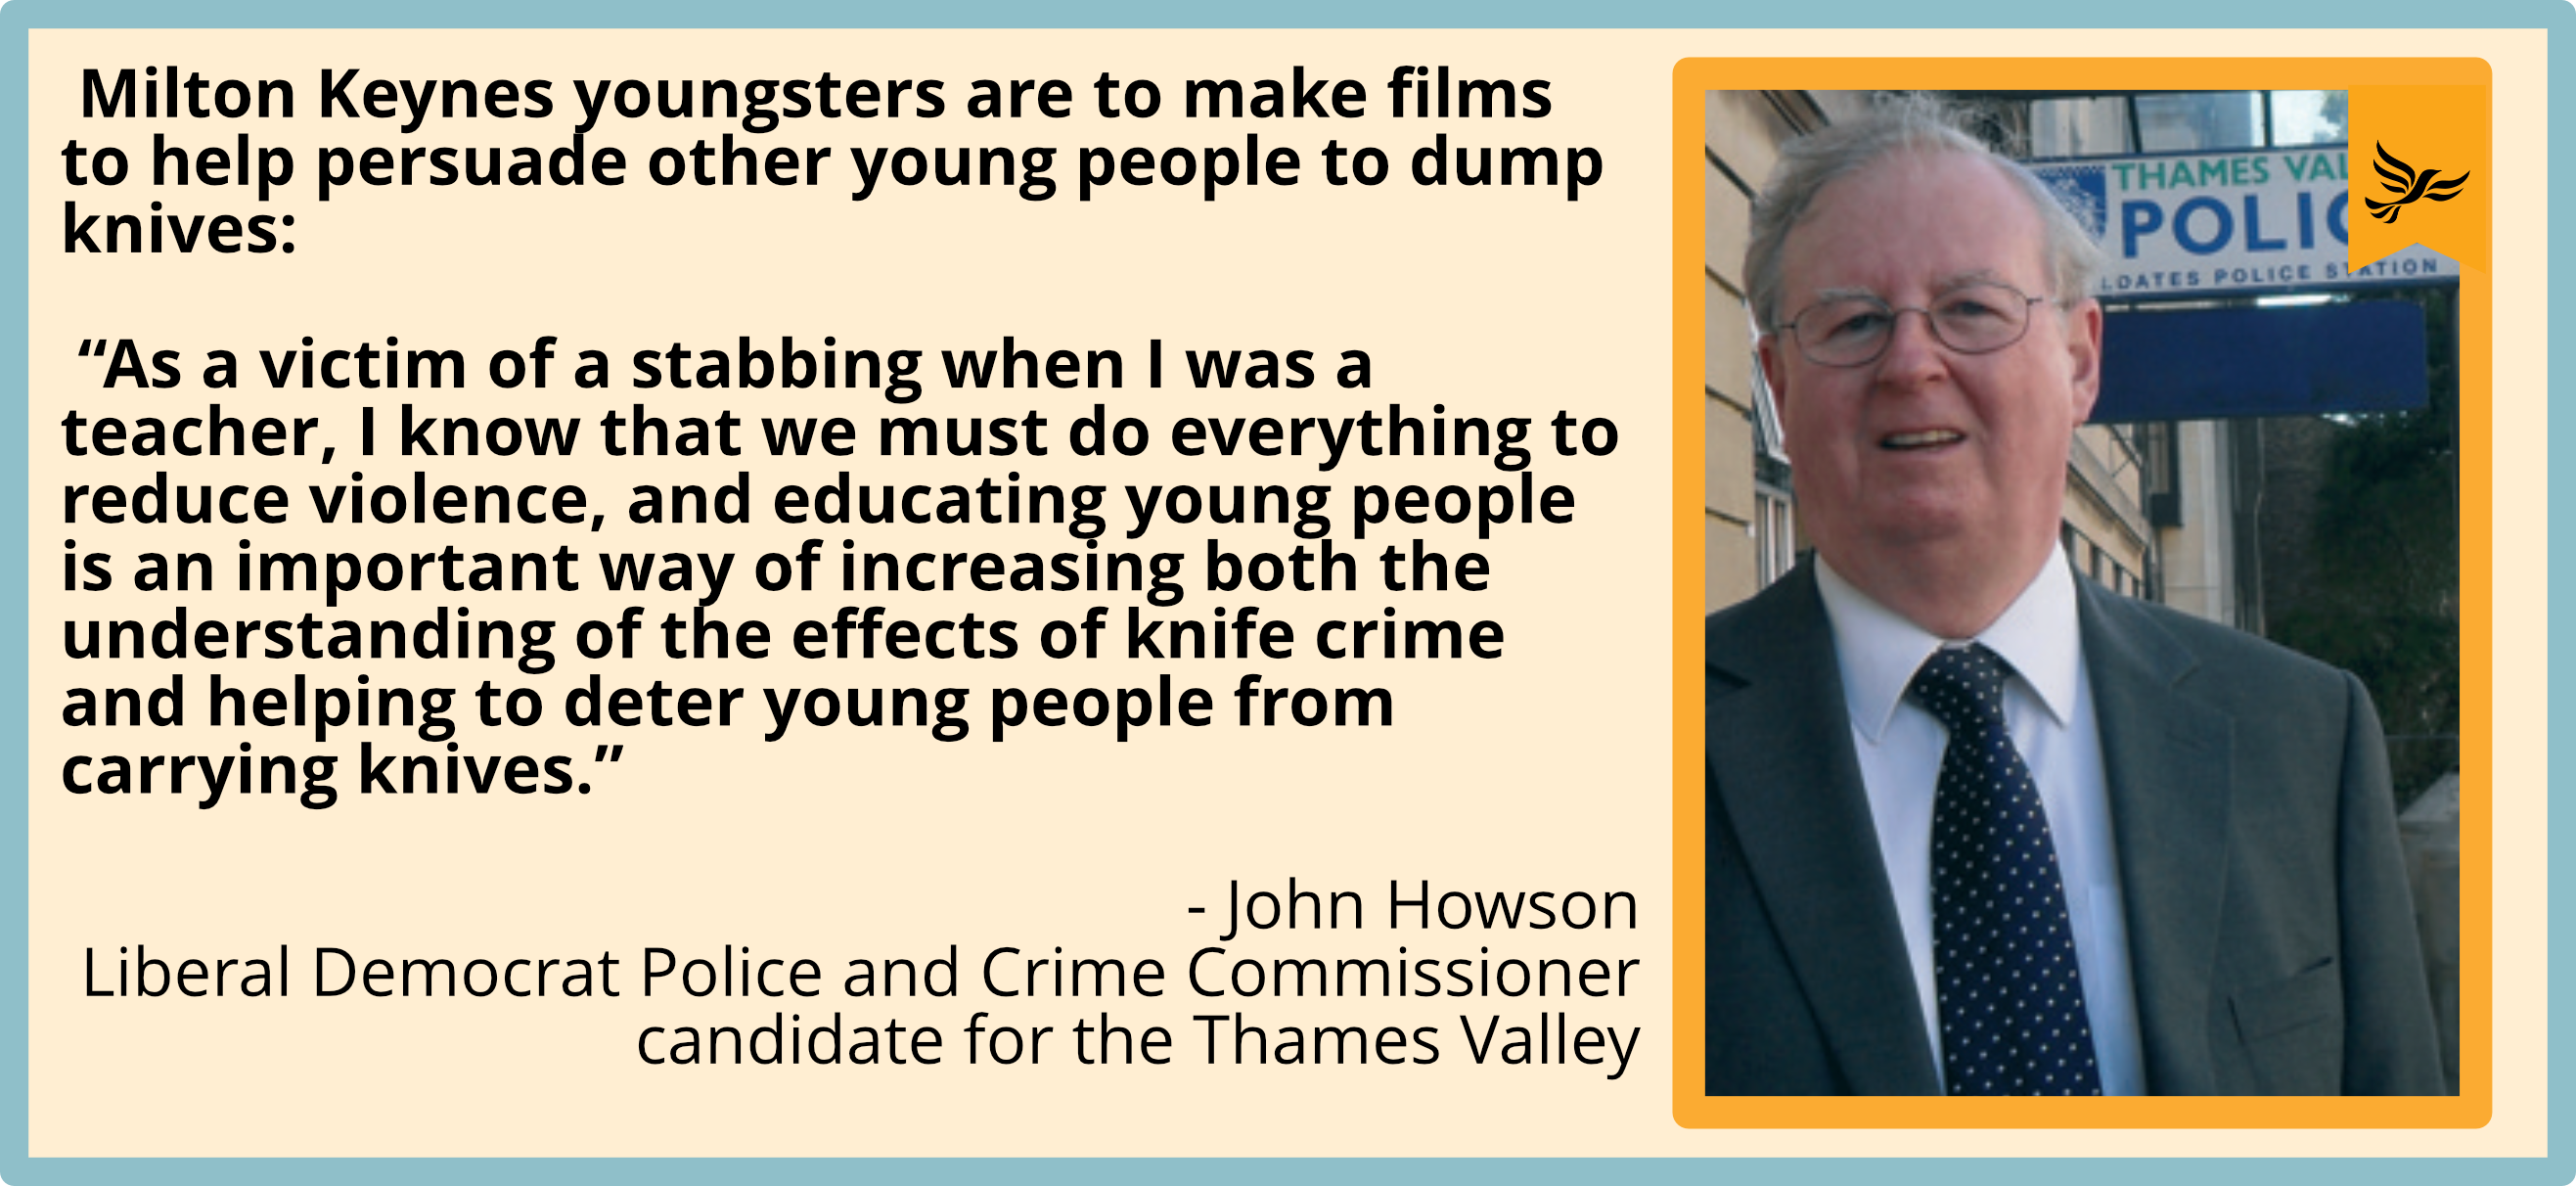 Milton Keynes youngsters are to make films to help persuade other young people to dump knives